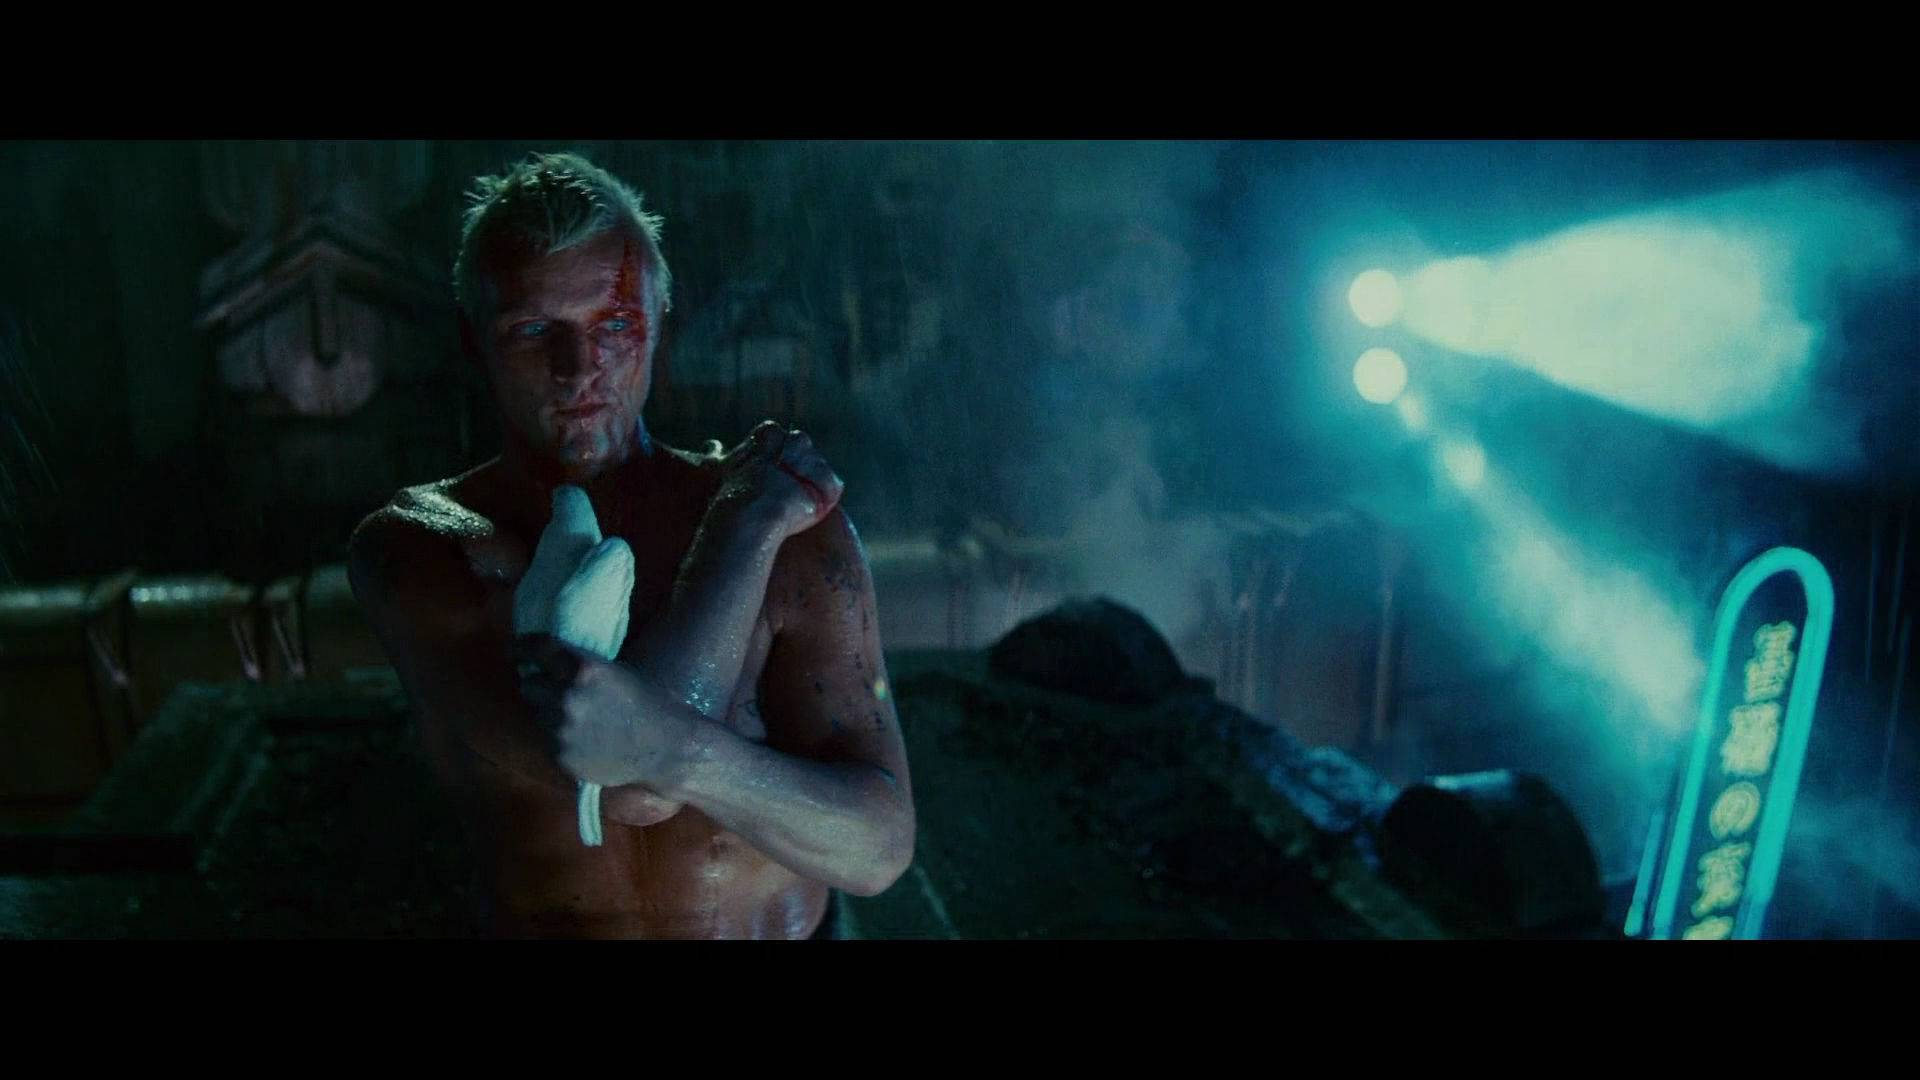 blade-runner-review-.jpeg